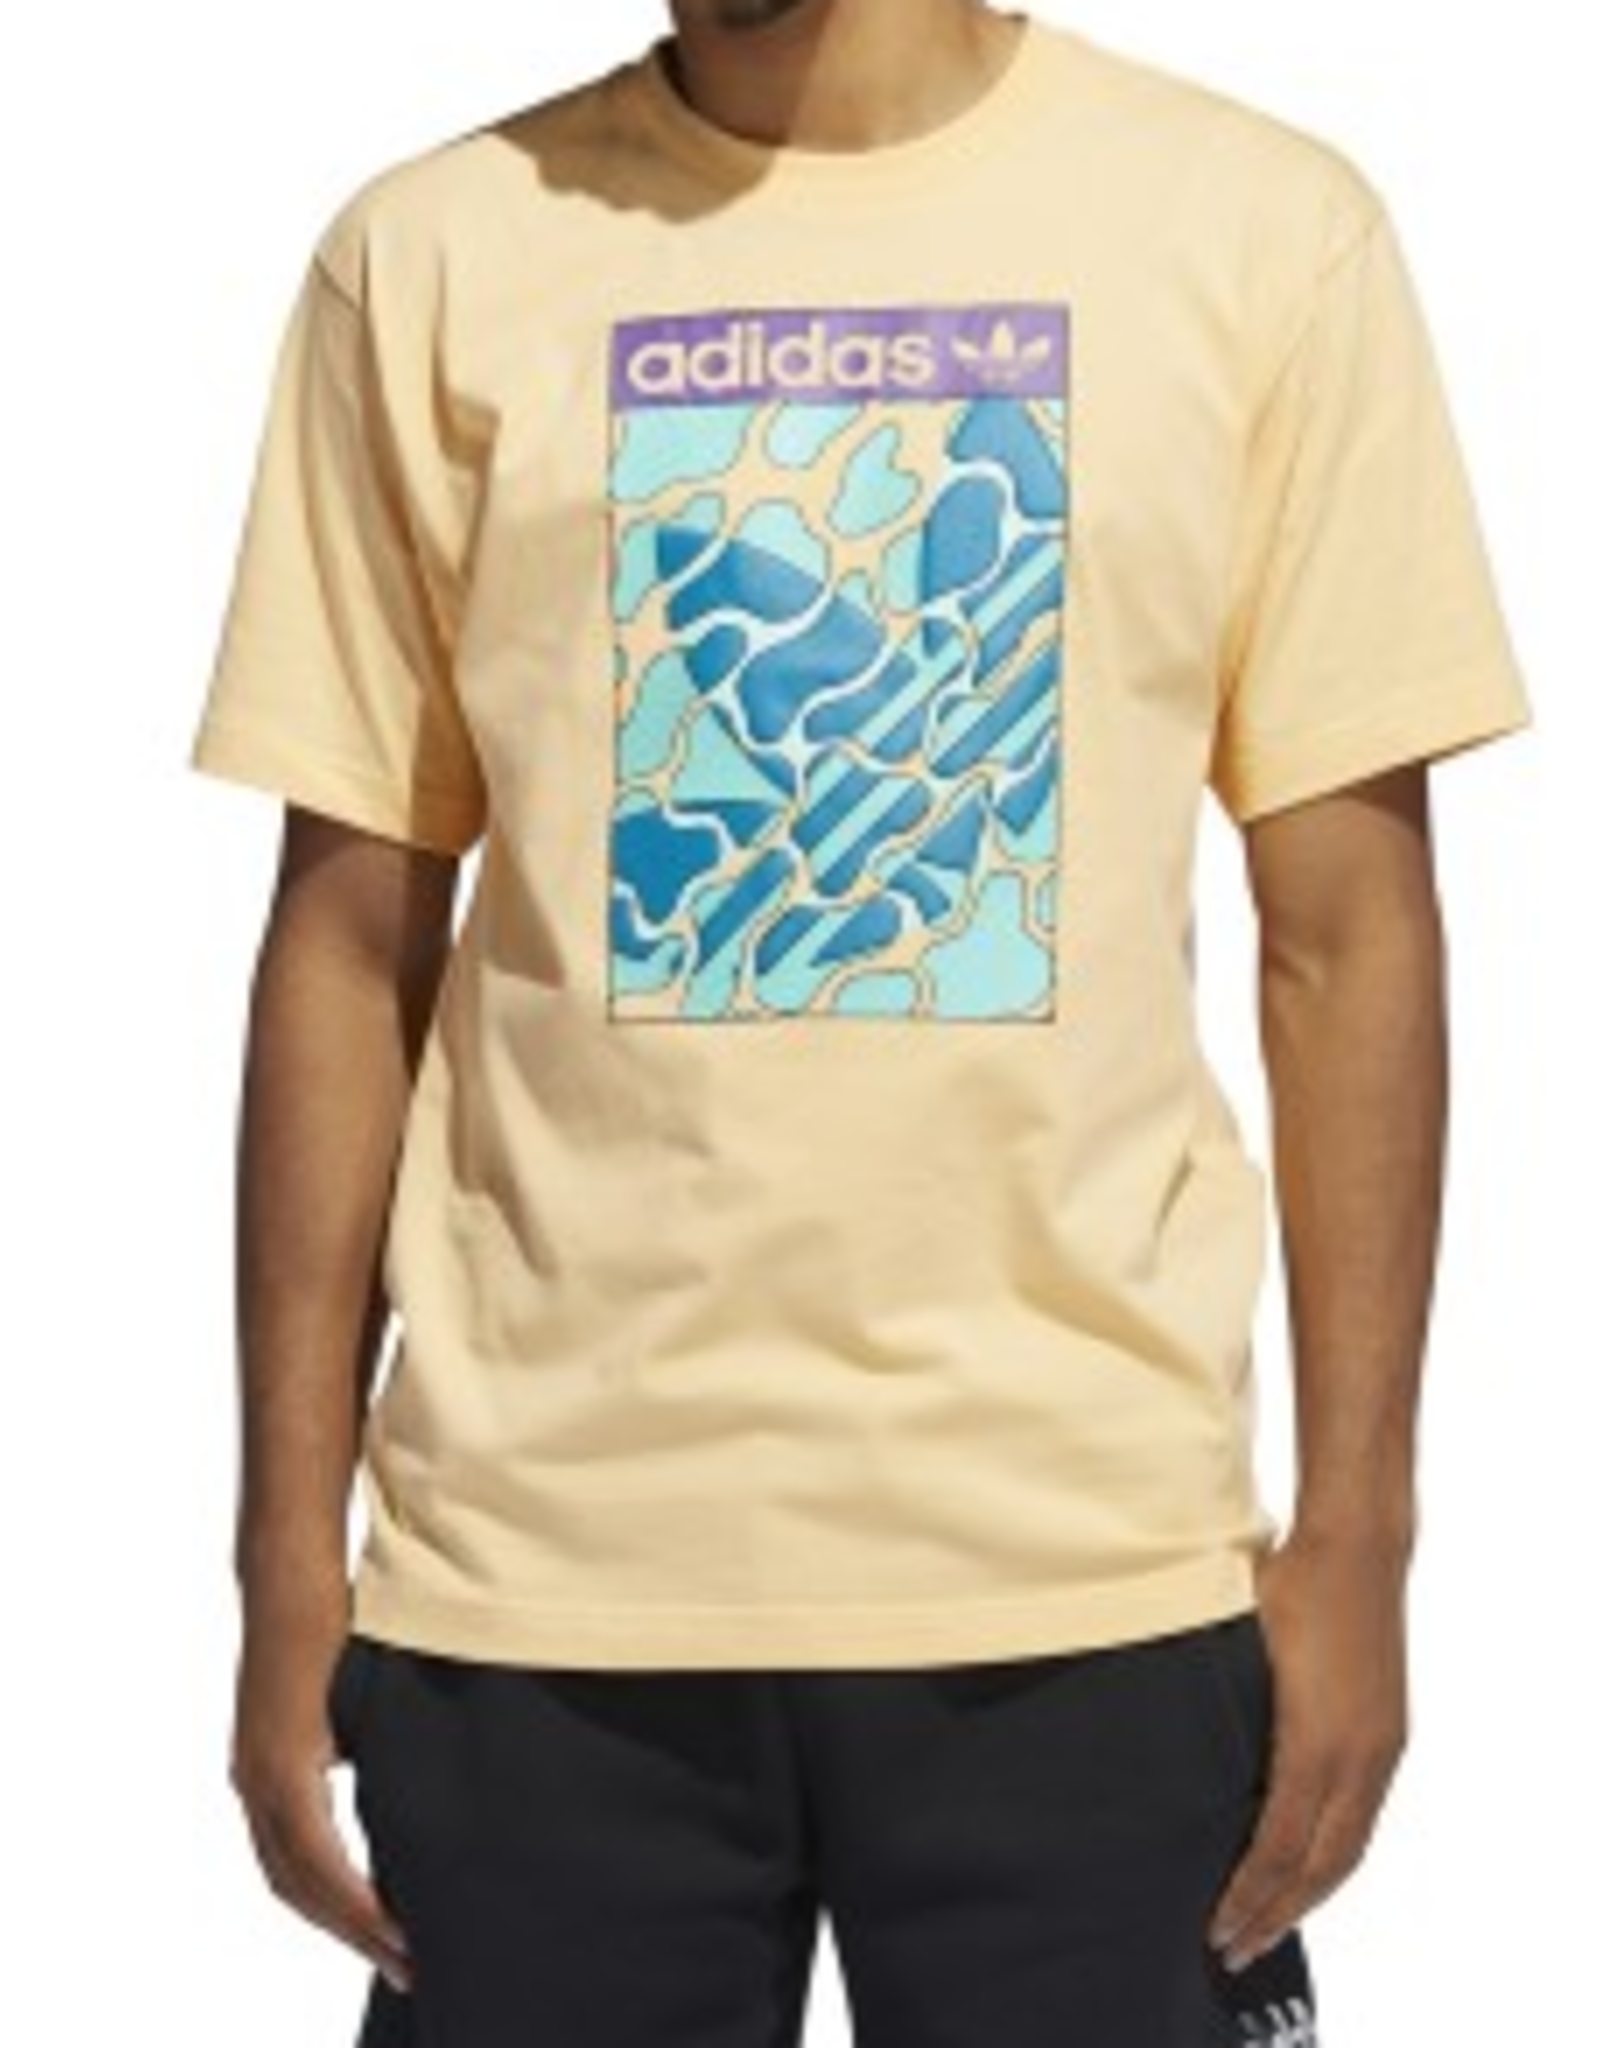 ADIDAS ADIDAS SUMMER TONGUE TEE SHIRT  ACID ORANGE